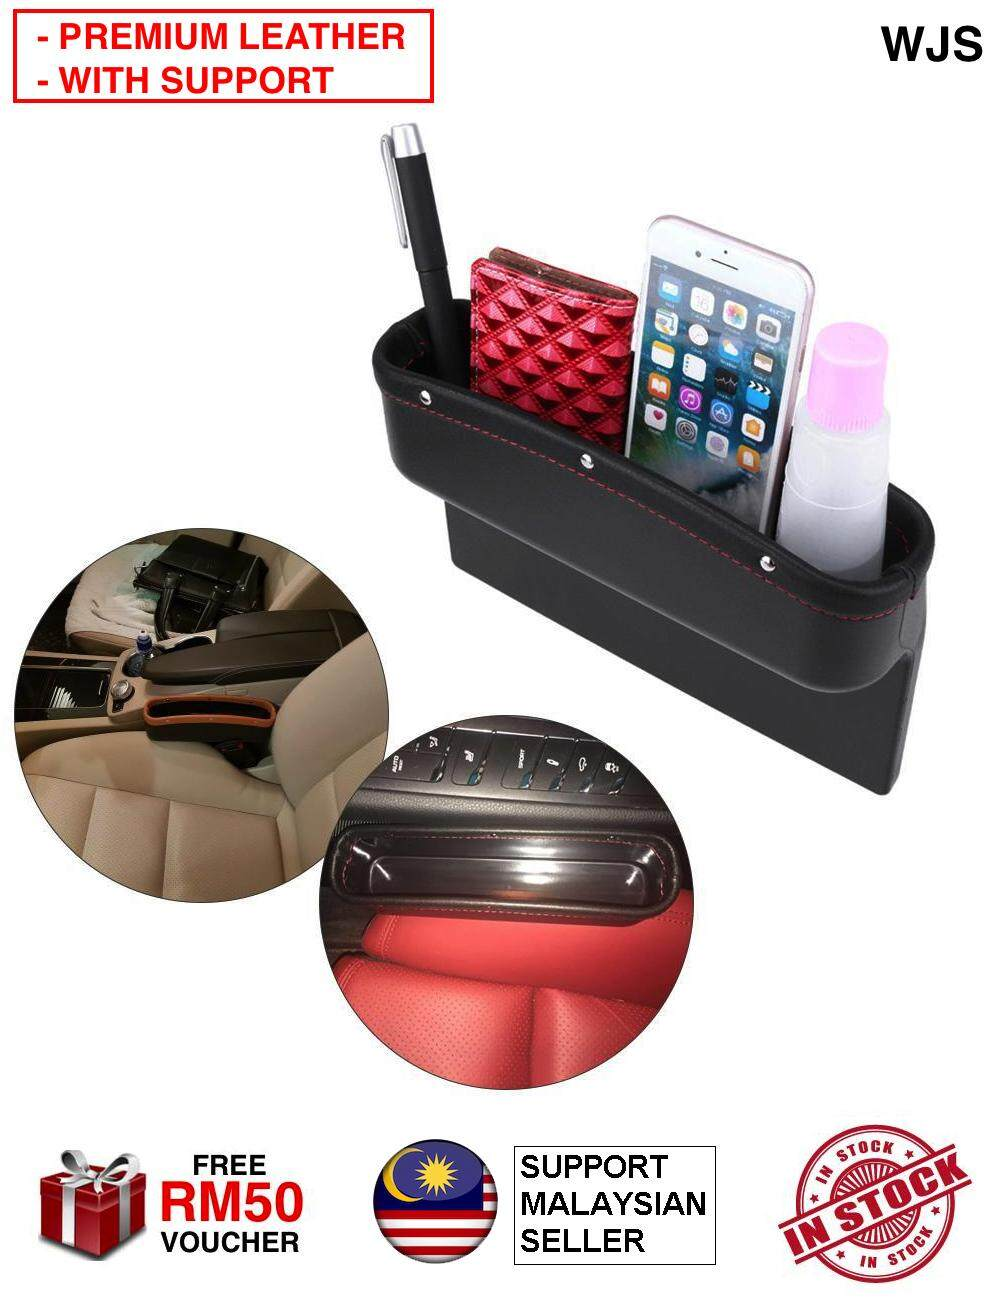 (PREMIUM LEATHER) WJS Premium Car Seat Leather Gap Guard Leak-proof Storage Box Car Seat Side Stopper Pocket Holder With Support BLACK BEIGE BROWN [FREE RM 50 VOUCHER]